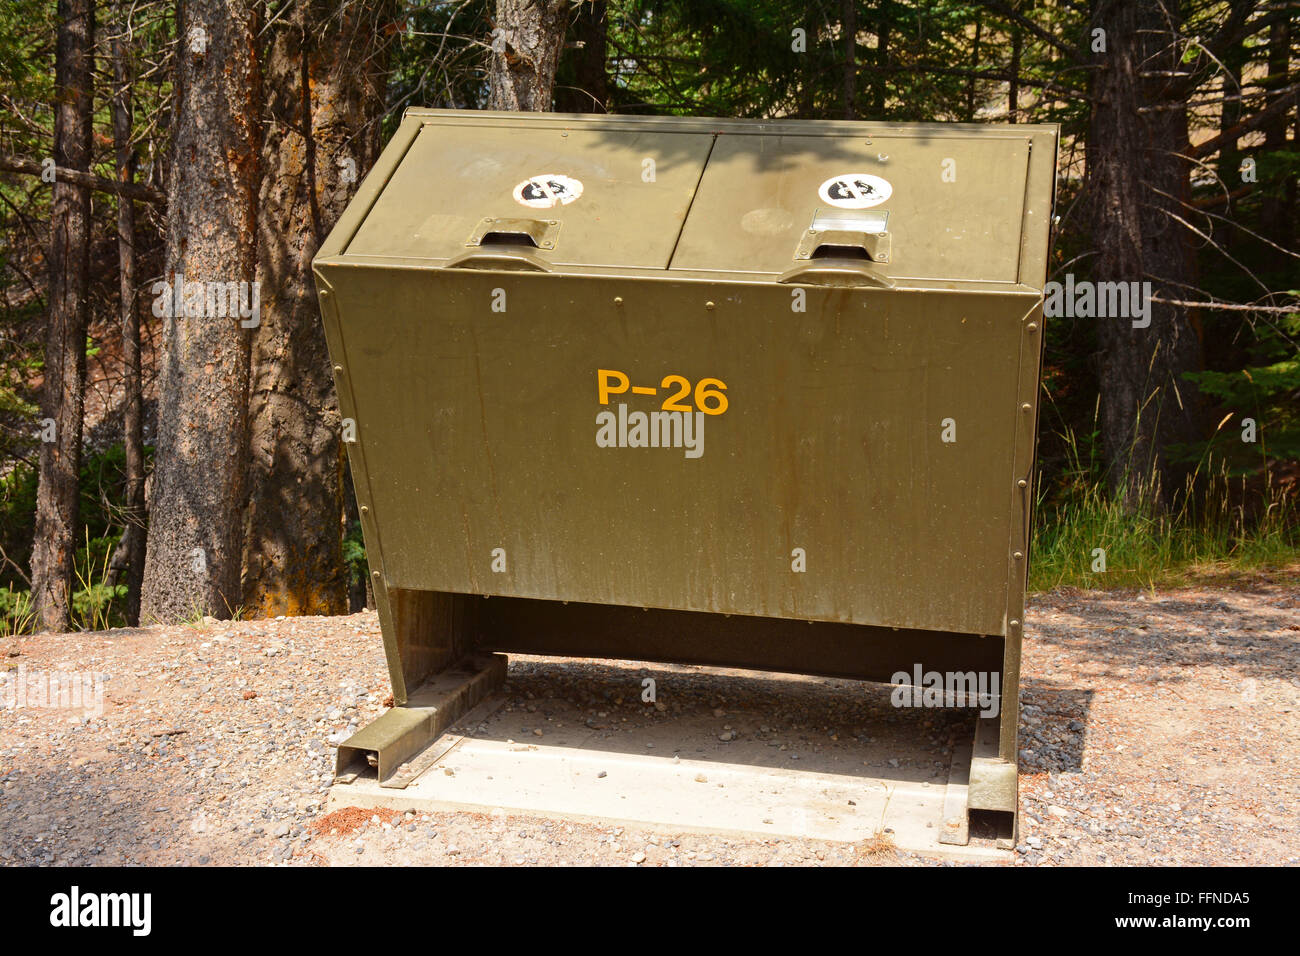 Bear proof Garbage container - Stock Image